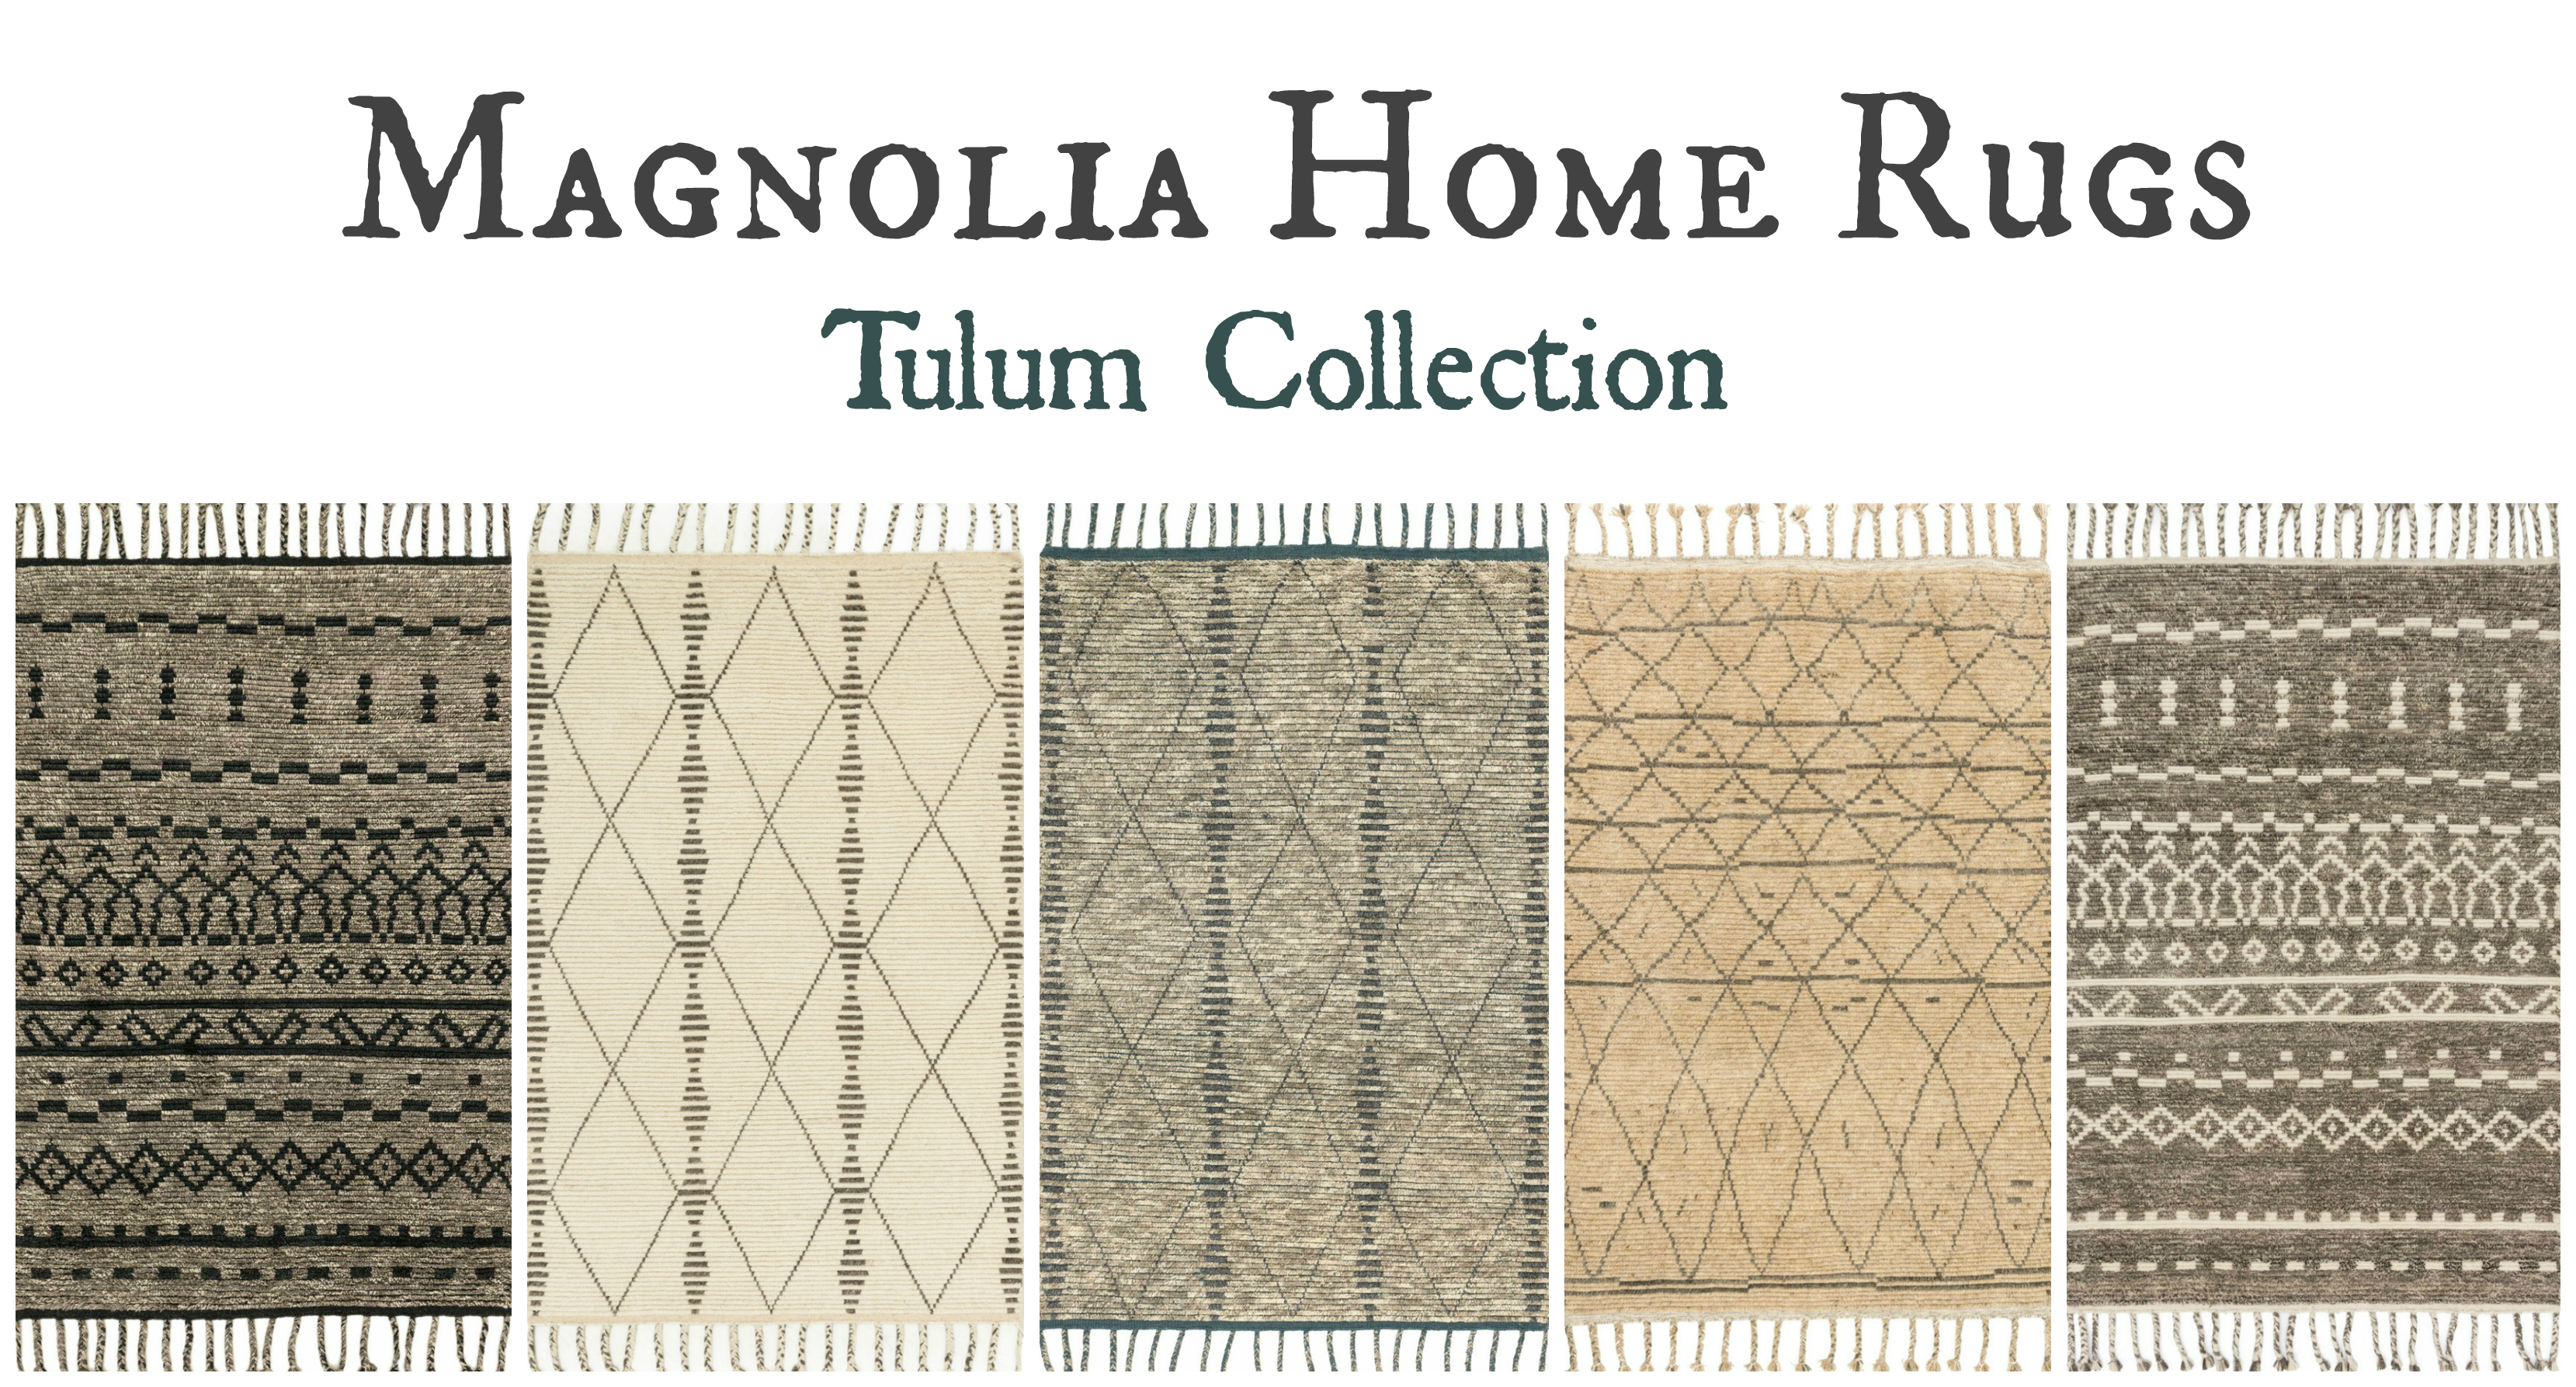 Where To Magnolia Home Rugs Without Leaving Your House The Weathered Fox